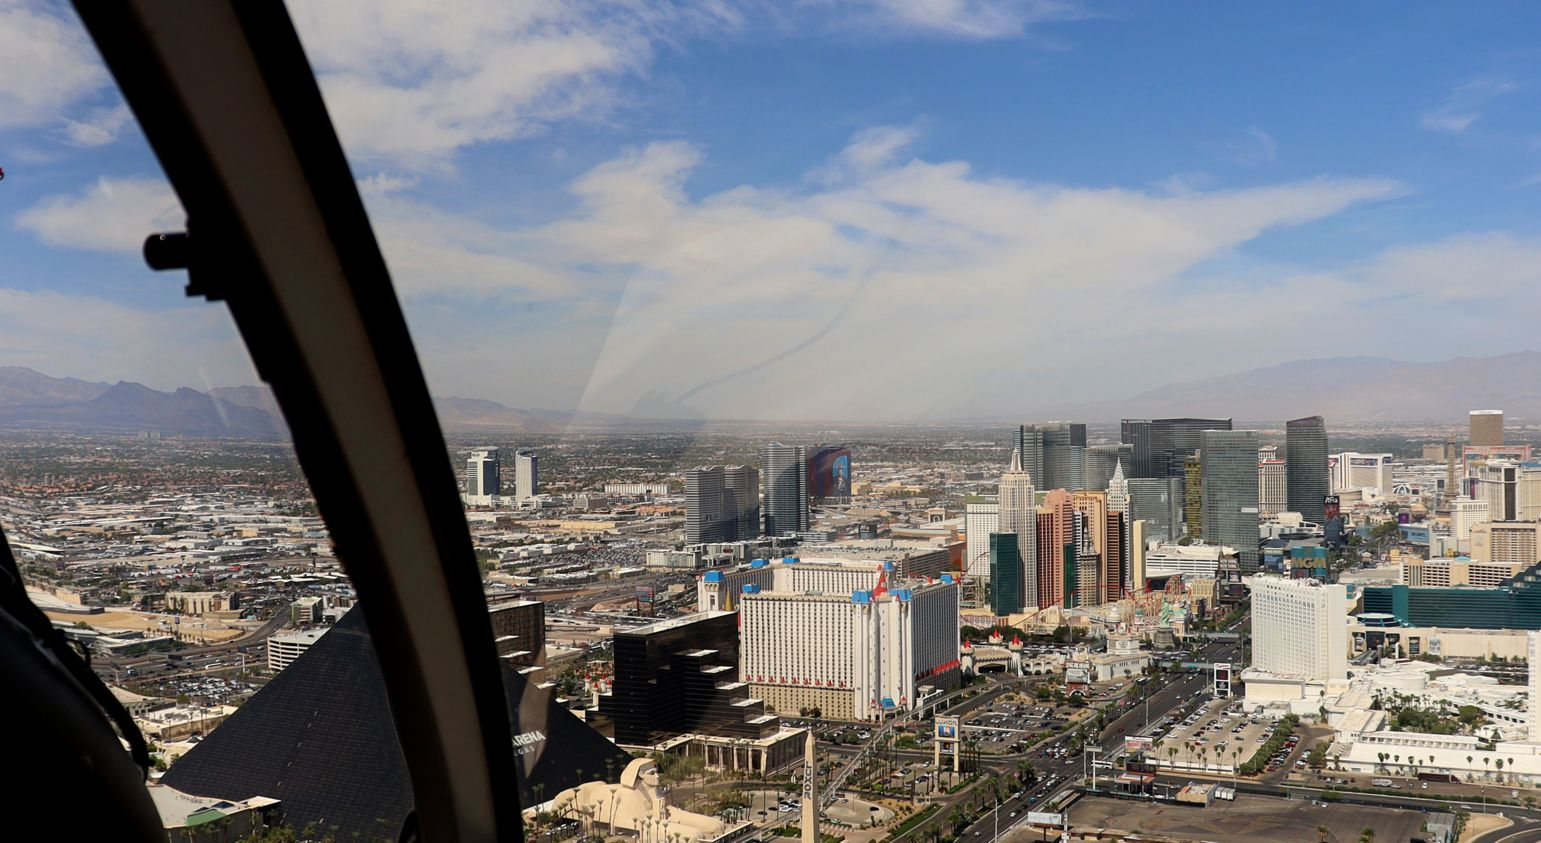 An aerial view of the Strip casinos seen from inside a Las Vegas helicopter tour.